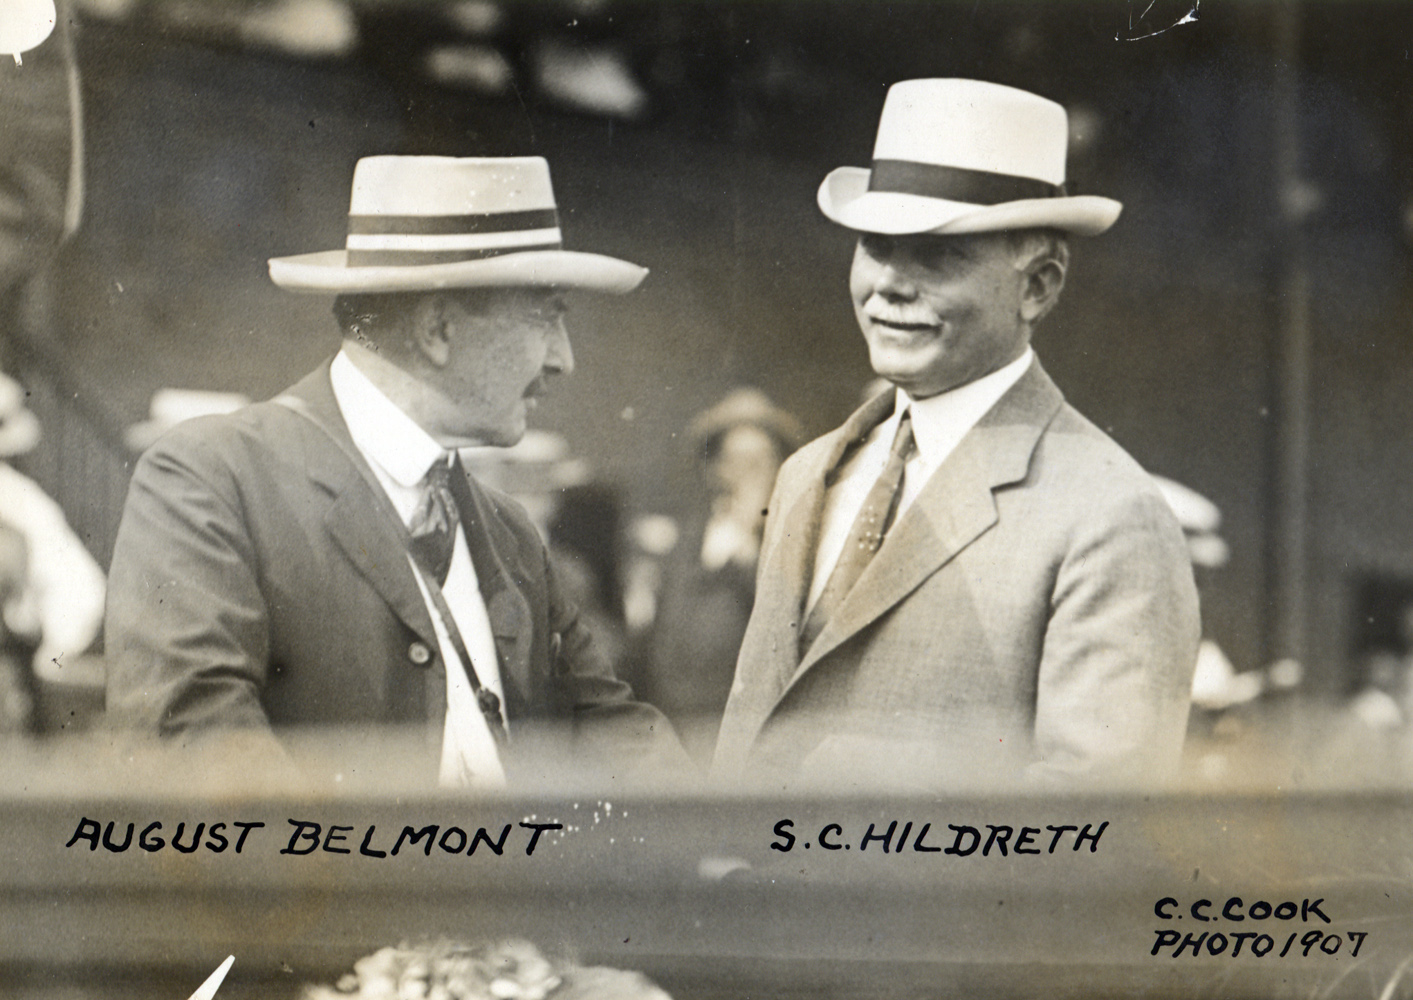 August Belmont II and Sam Hildreth at the races in 1907 (C. C. Cook/Museum Collection)